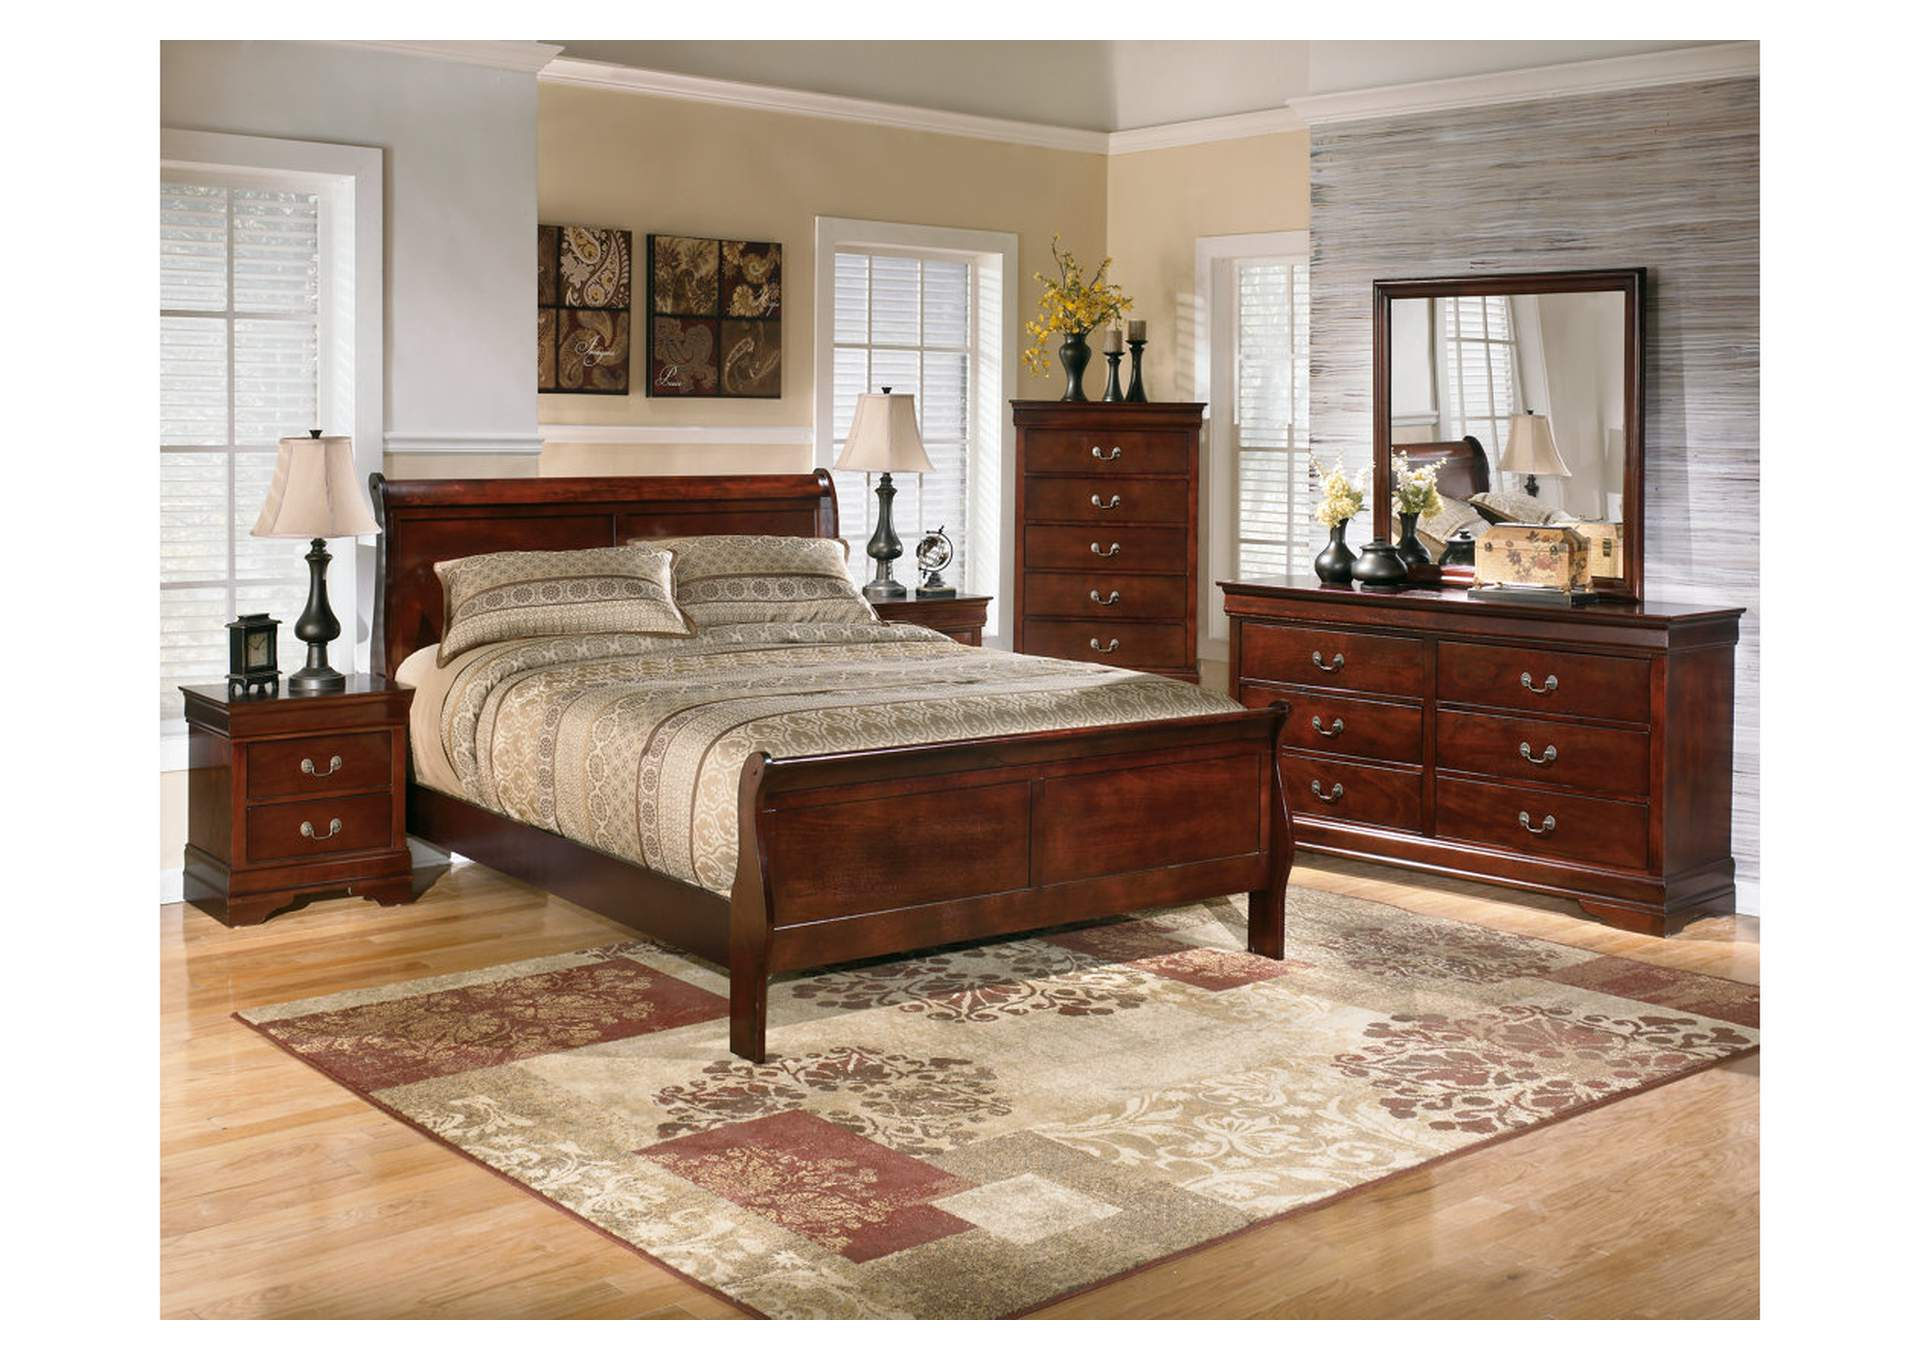 Alisdair Queen Sleigh Bed w/Dresser, Mirror & Drawer Chest,Signature Design By Ashley